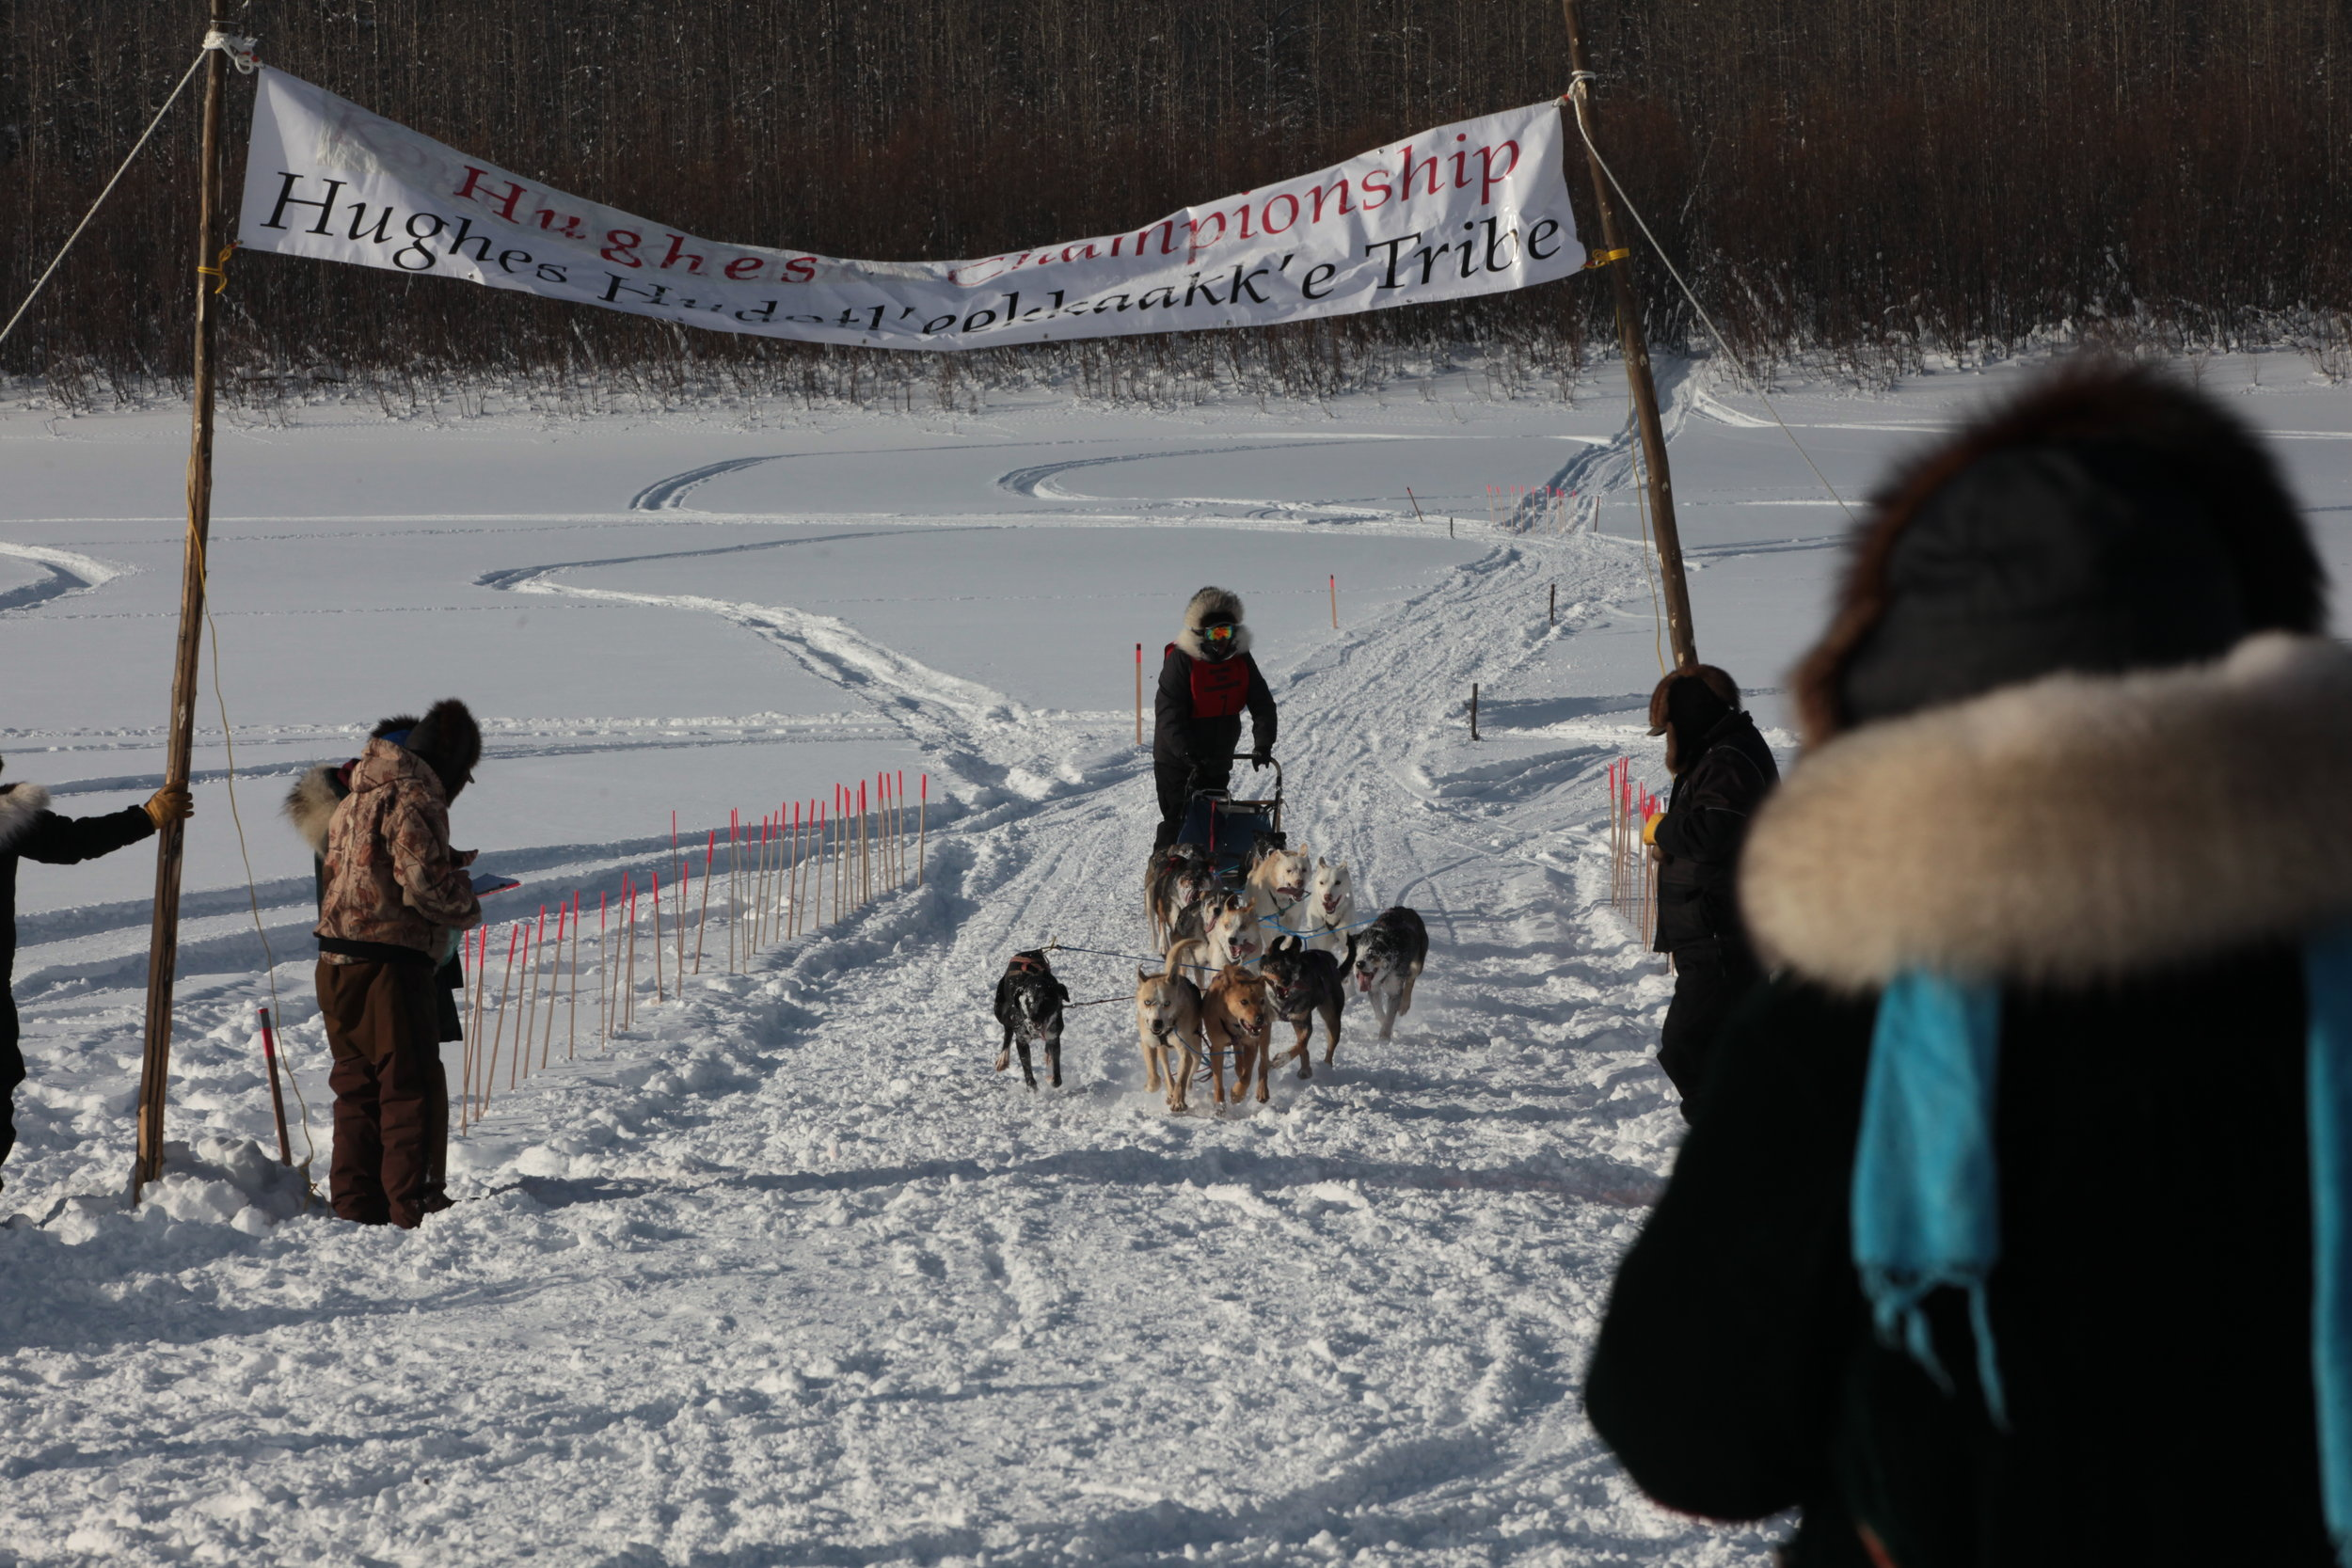 InterVillage Sled Dog Race in Hughes, March 2017